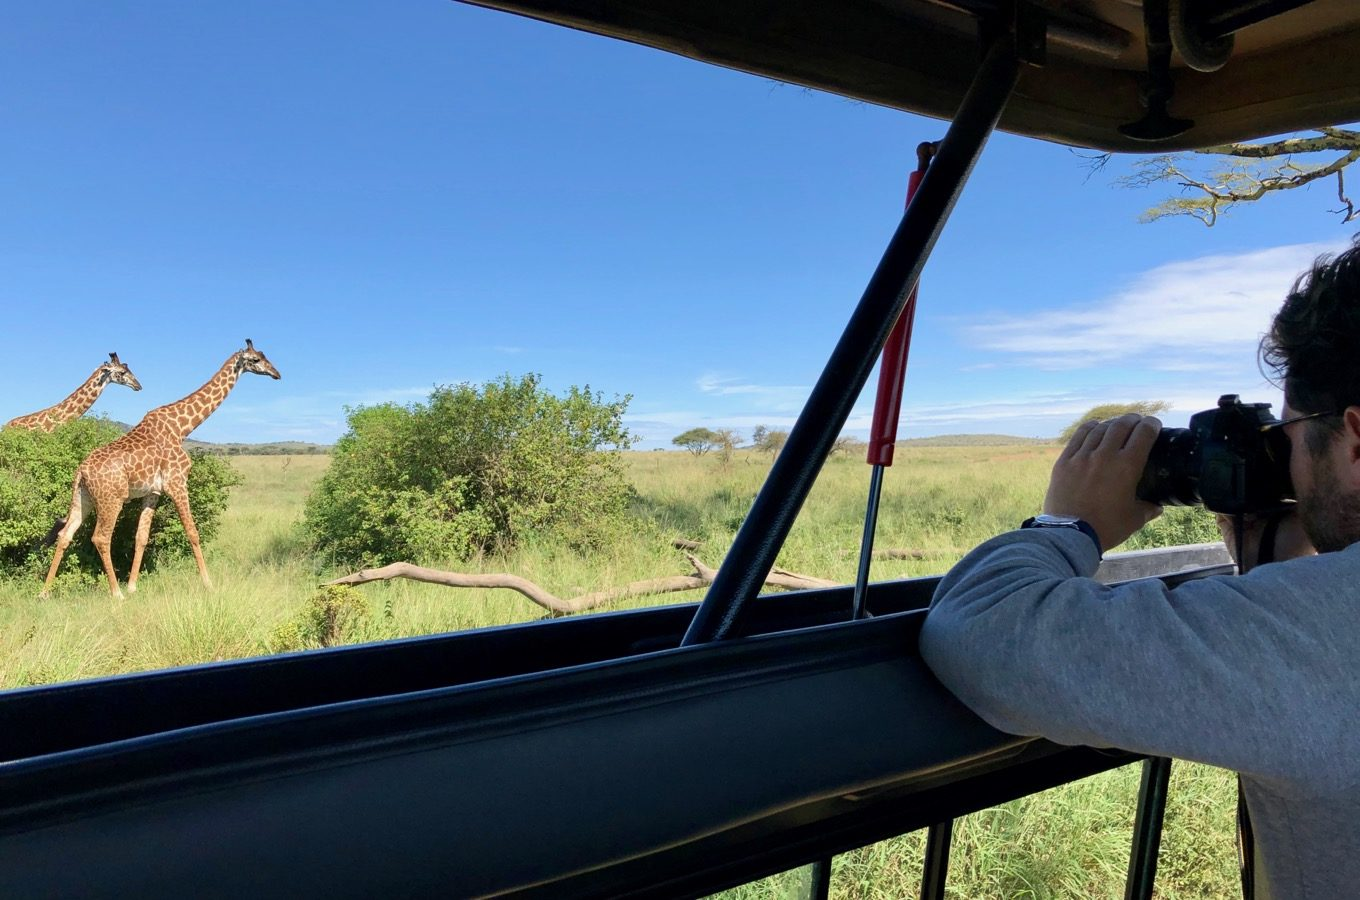 Observation of giraffes during a safari in the Serengeti